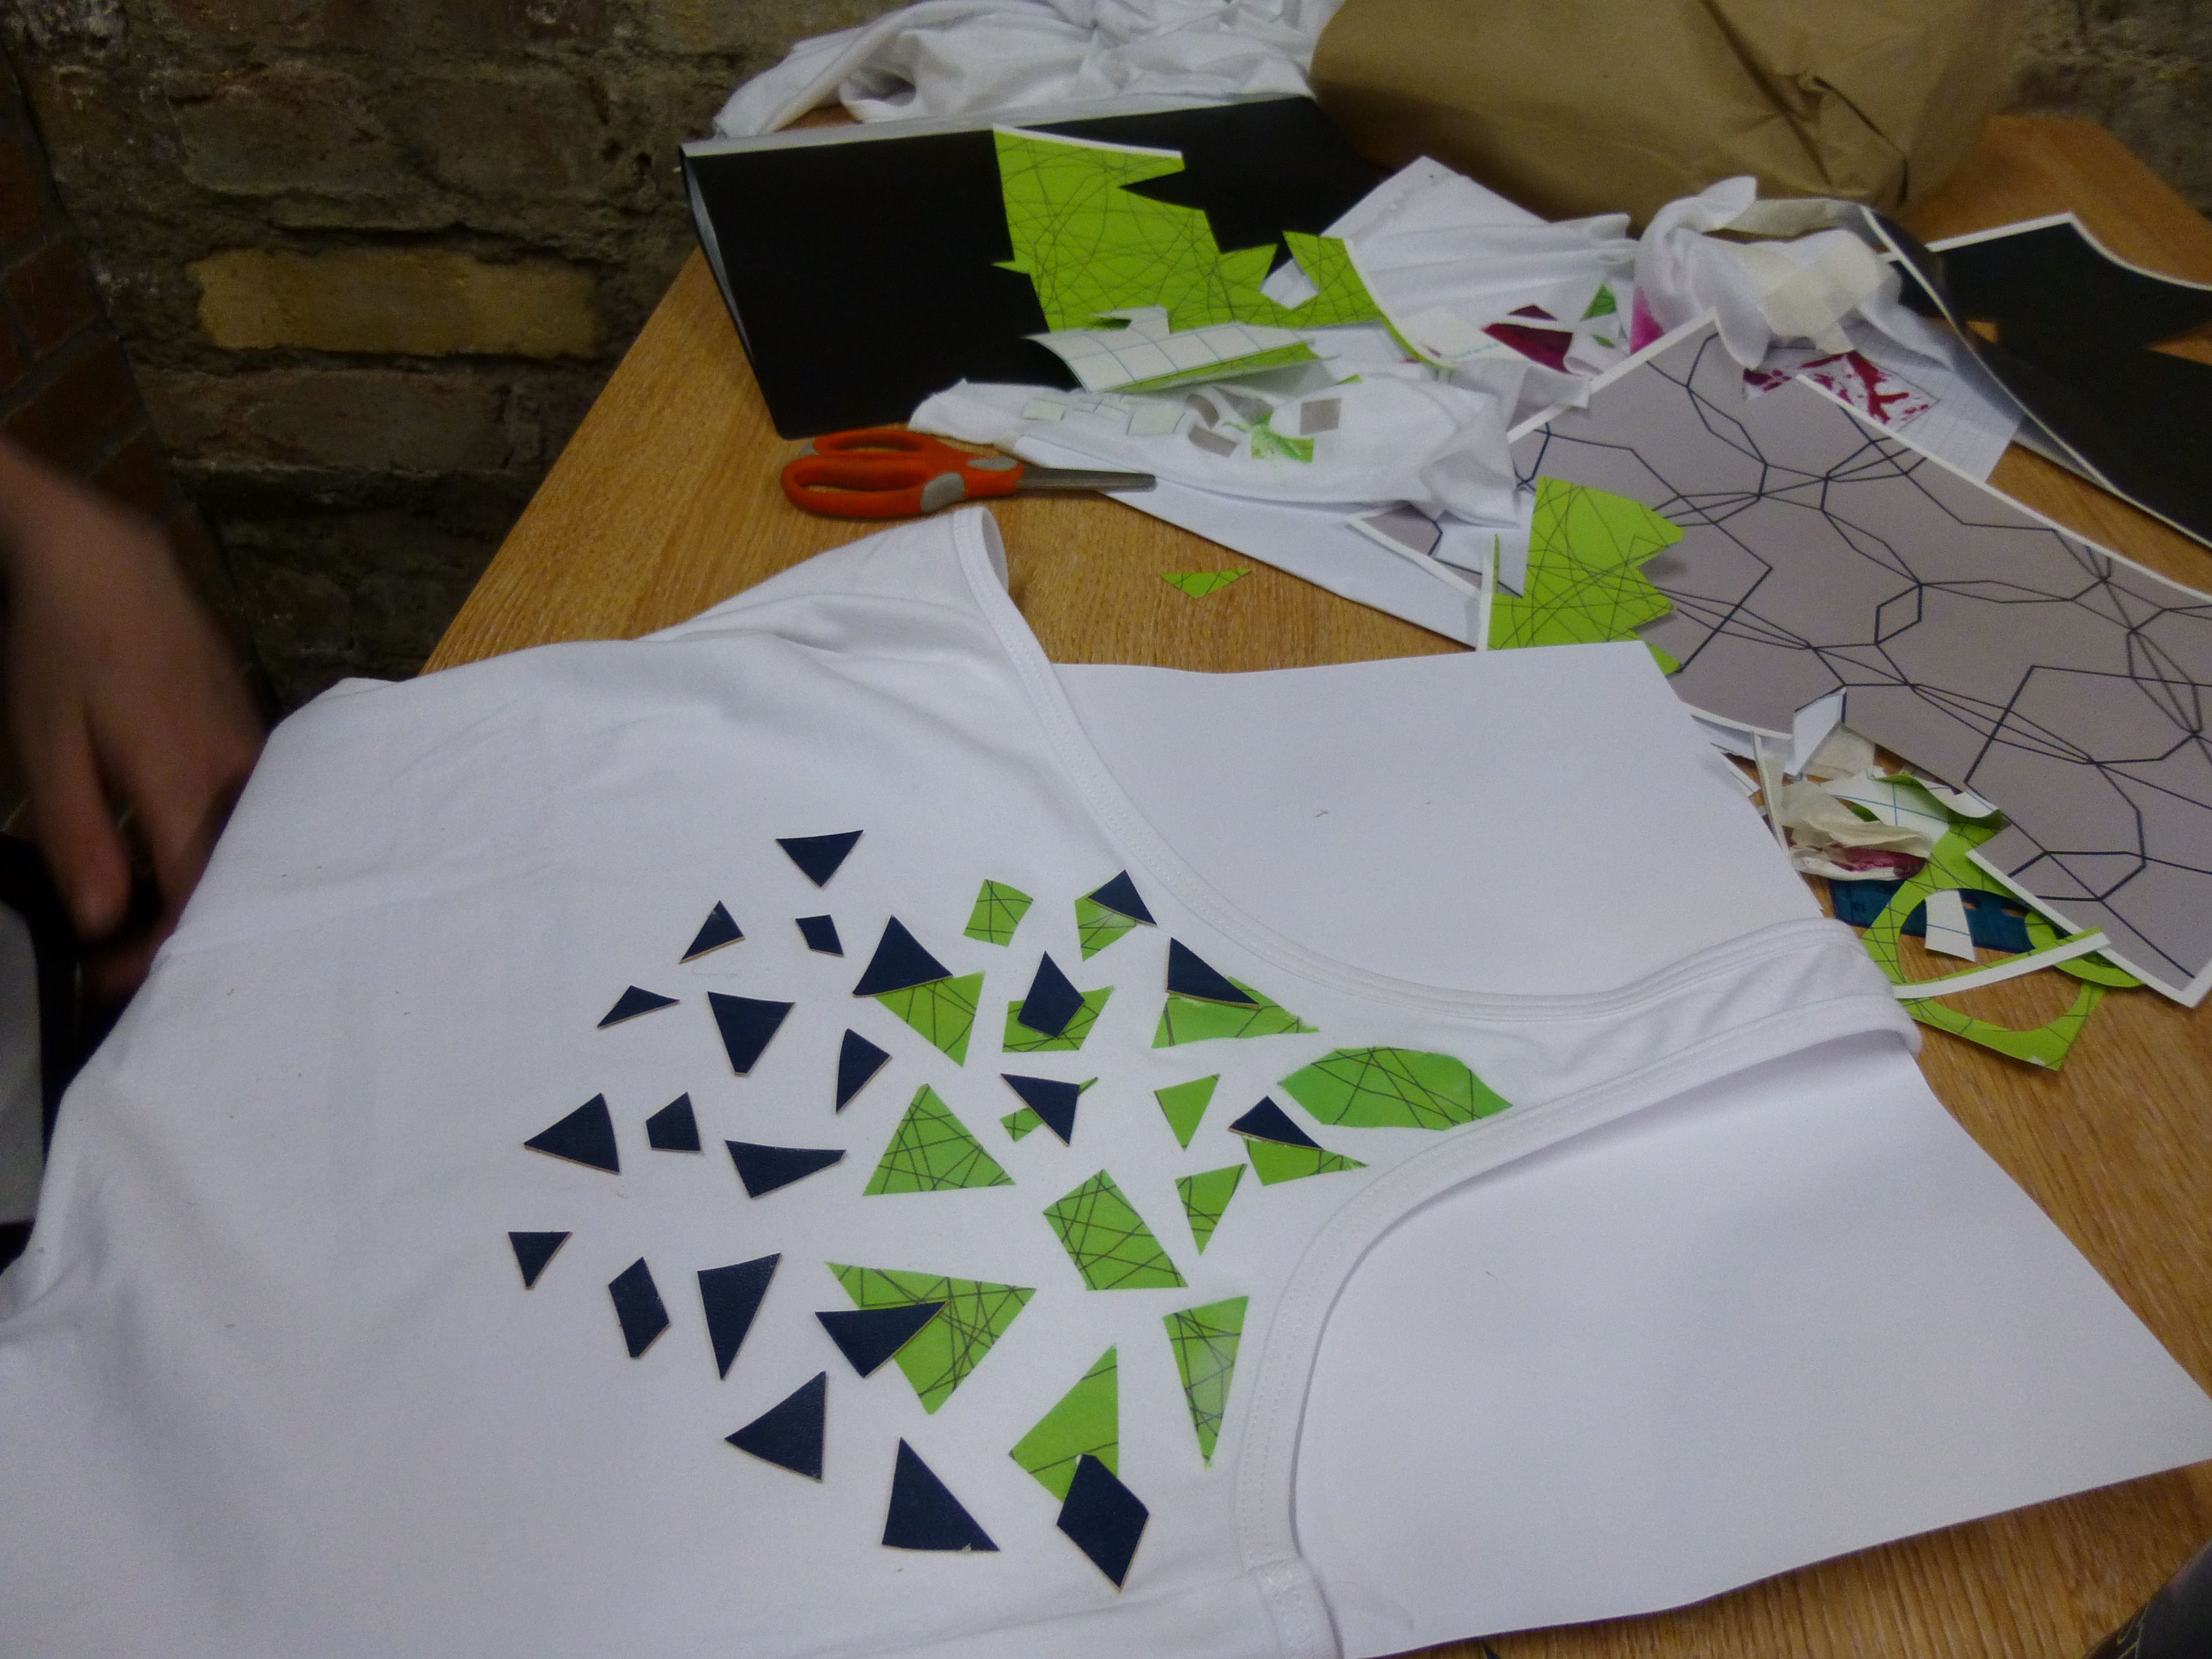 Heat transfer and leather scraps